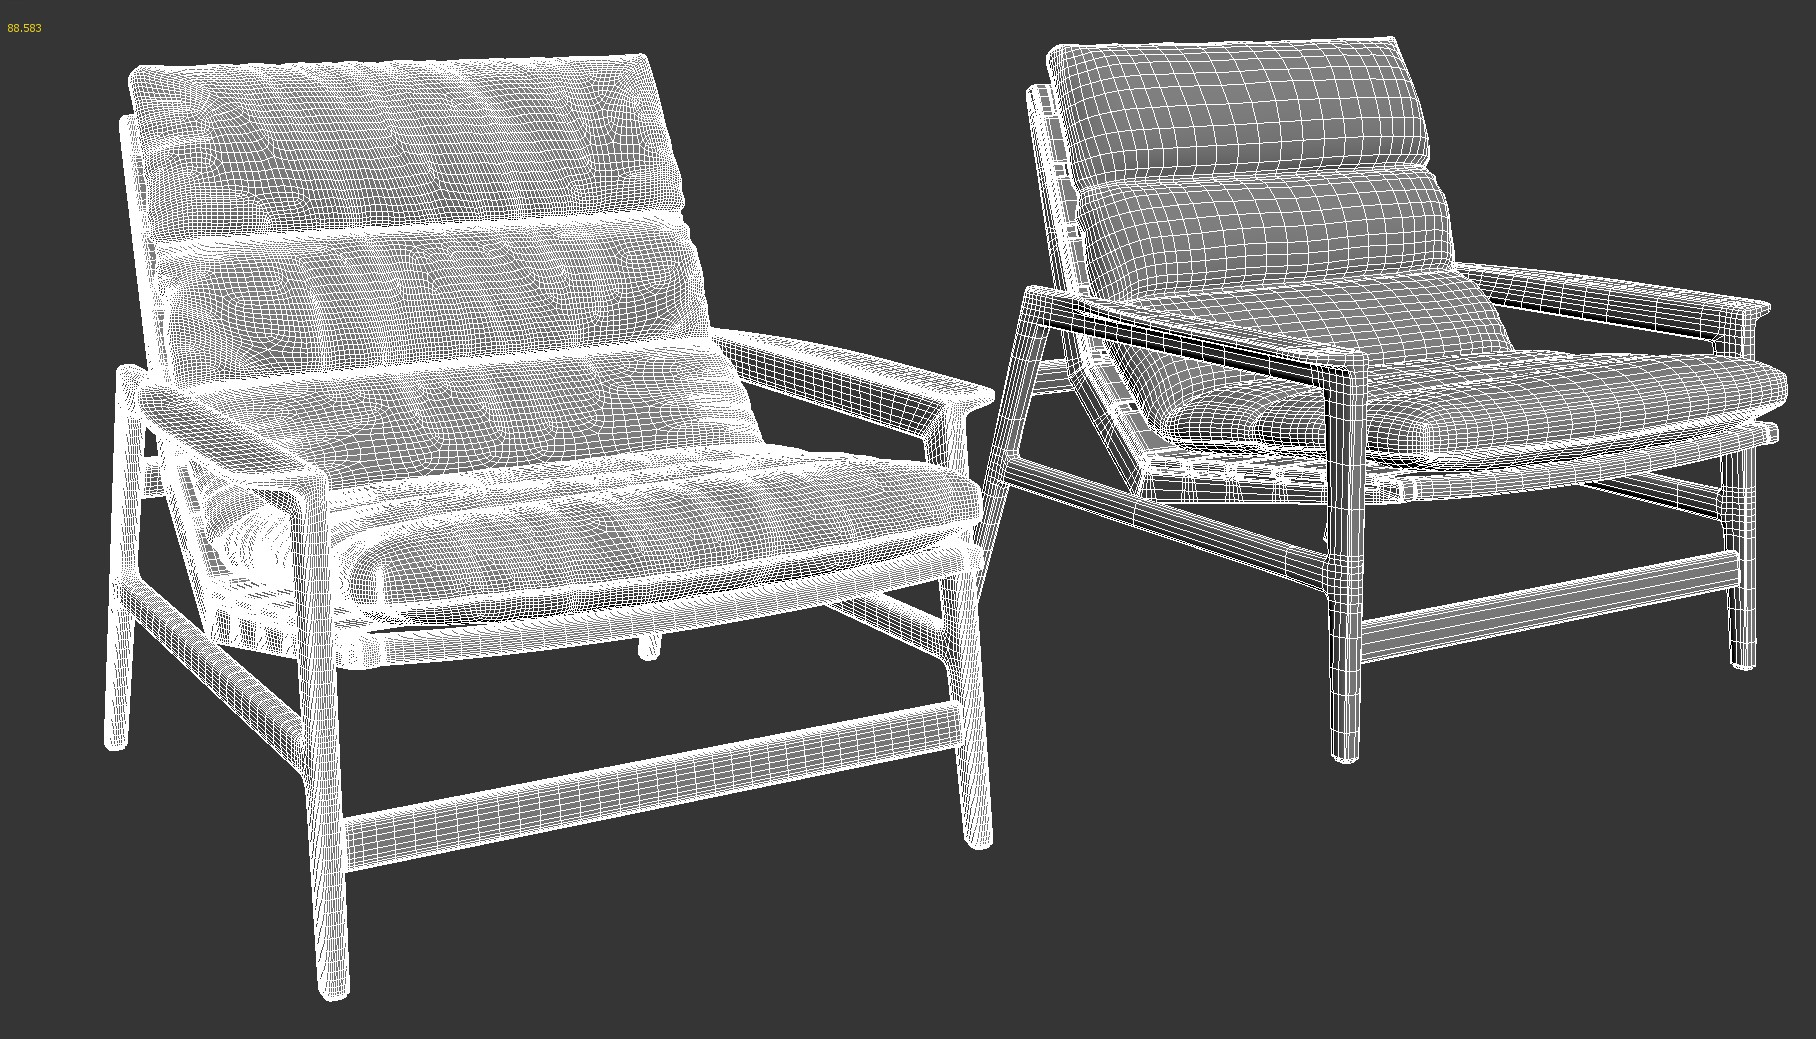 Before-Product 3d modeling